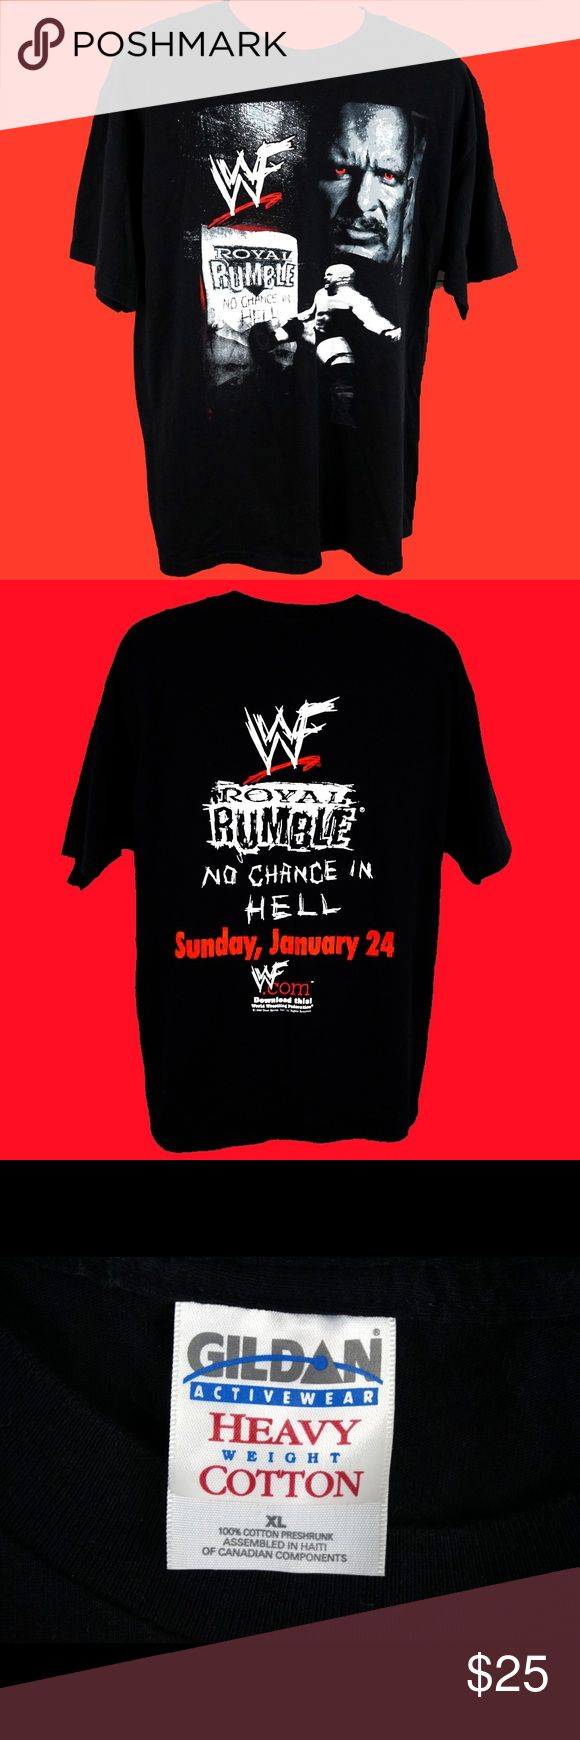 """WWF Stone Cold Royal Rumble T-Shirt Blood Red Eyes Rare Vintage WWF Royal Rumble No Chance Stone Cold Steve Austin No Chance in Hell T-Shirt Men's Size XL. This t-shirt is in amazing shape and looks to be never worn or washed. Amazing Stone Cold Shirt that you just don't find often. Detailed Measurements: Sleeves: 9"""" inches • Underarm: 23"""" inches • Length: 30"""" • Five Star Posh Rating and under 1 day shipper! Please purchase with confidence. Orders ship in 1 day or less from a clean and smoke…"""